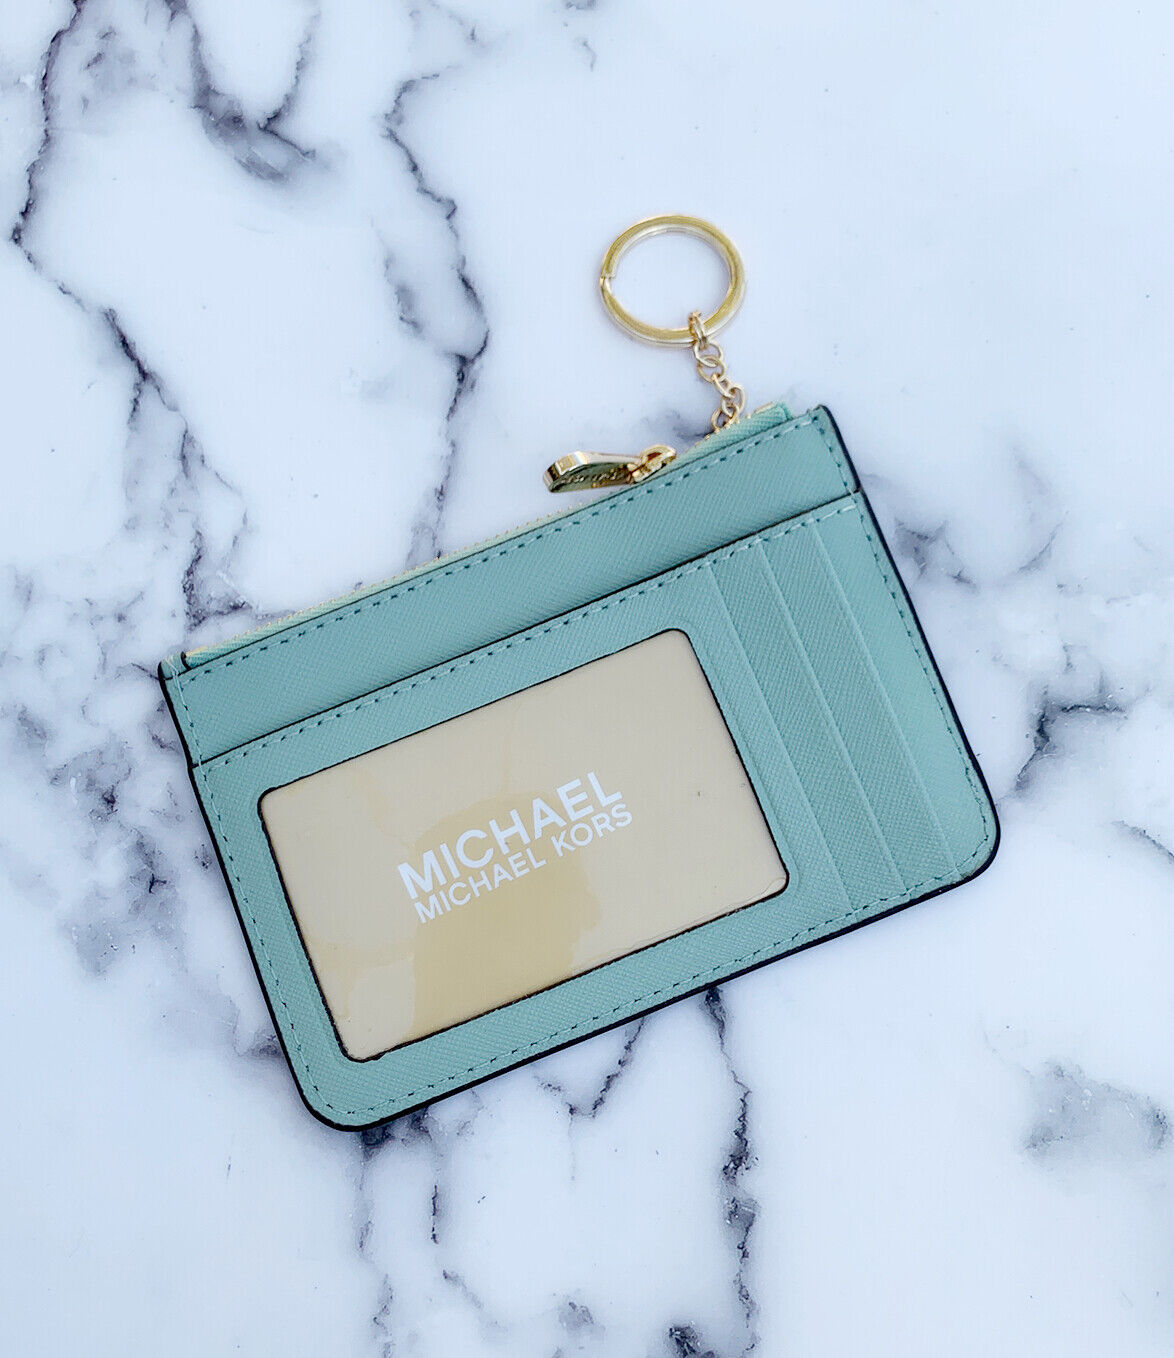 Michael Kors Jet Set Travel Small Top Zip Coin Pouch ID Holder Key Ring Wallet Pale Jade